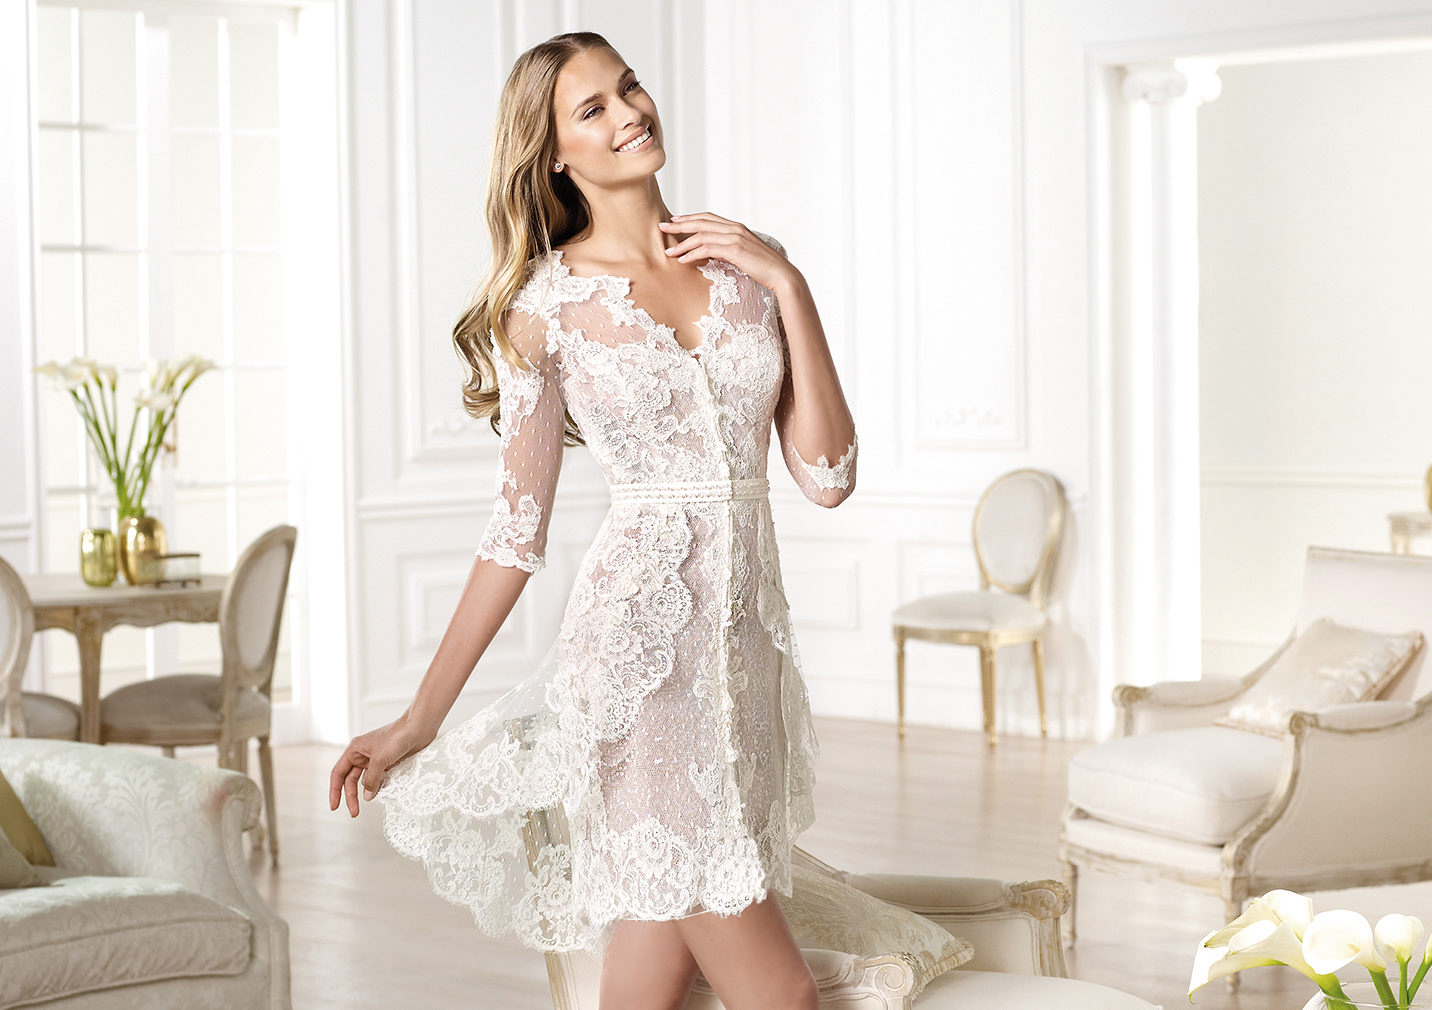 10 reasons to love short wedding dresses for Wedding dress ideas for short brides